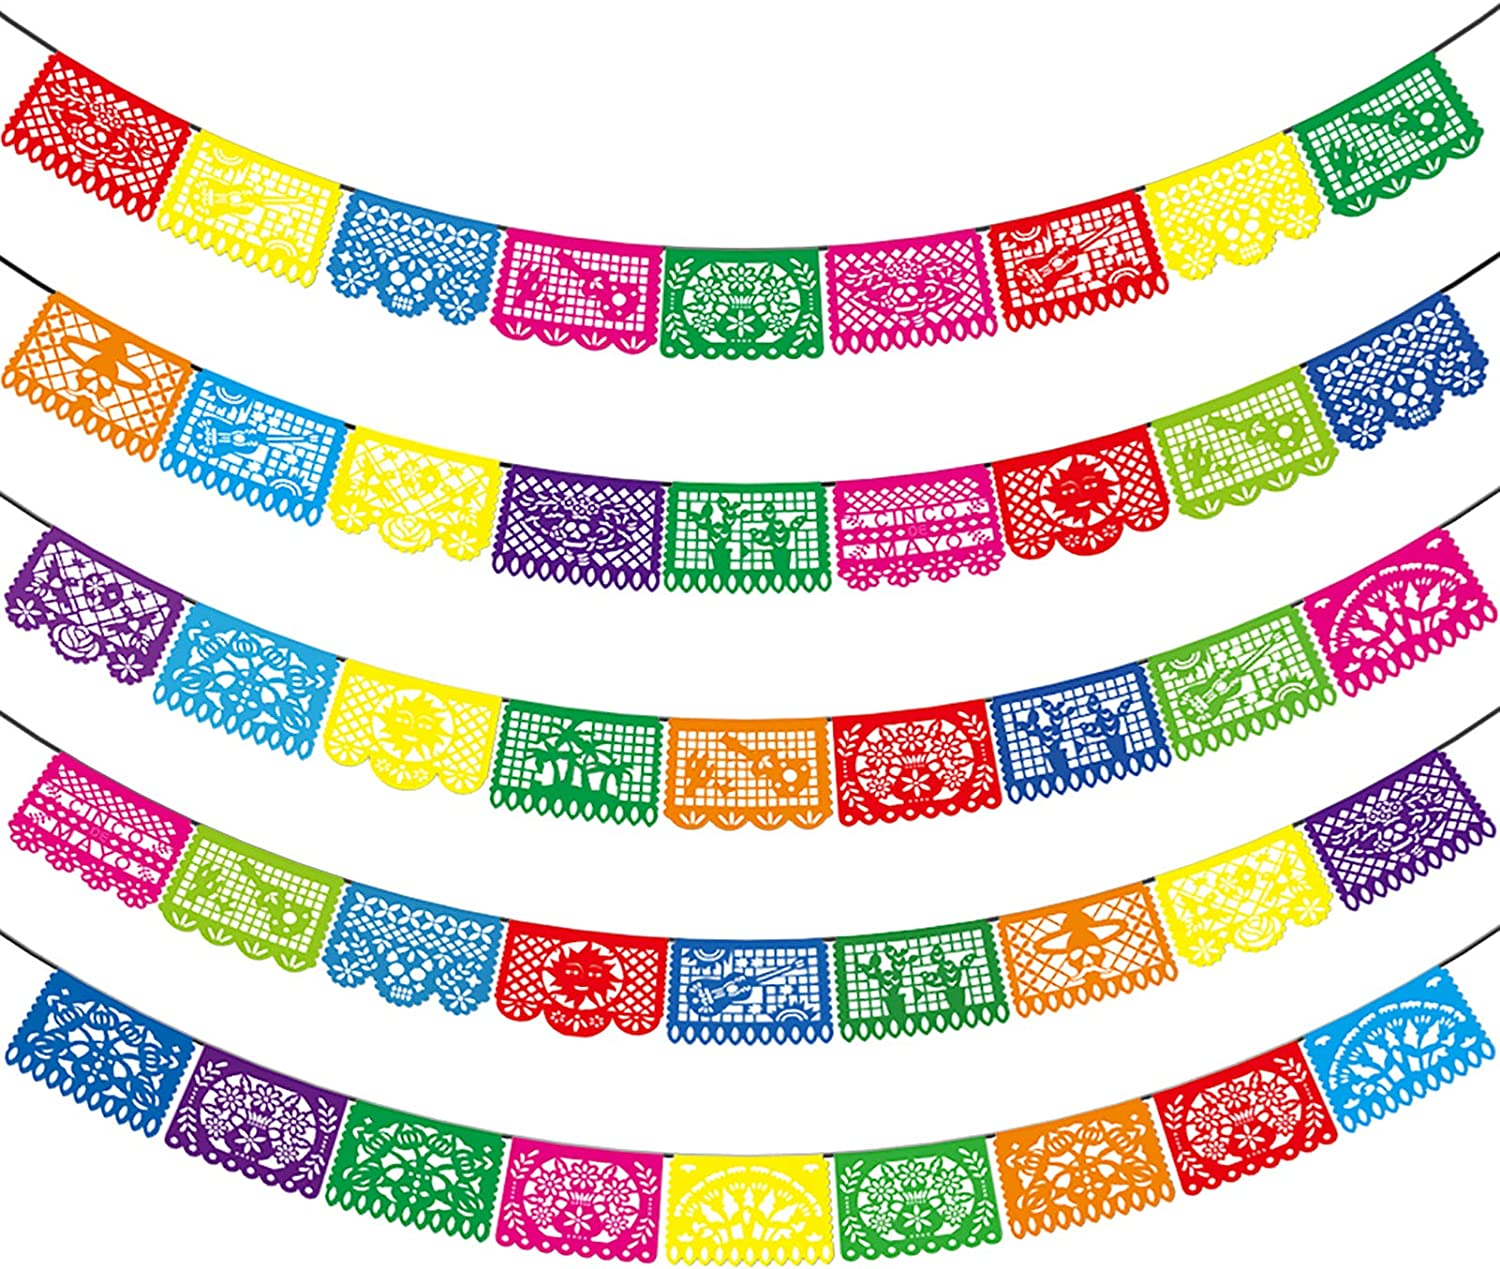 Mexican Party Banners - 5 Pack Fiesta Mexican Party Dia De Los Muertos Decorations Memorial Day Mexicano Fiesta Party Supplies Plastic Papel Picado Banners - 5 Different Designs, 90 Feet Long Totally